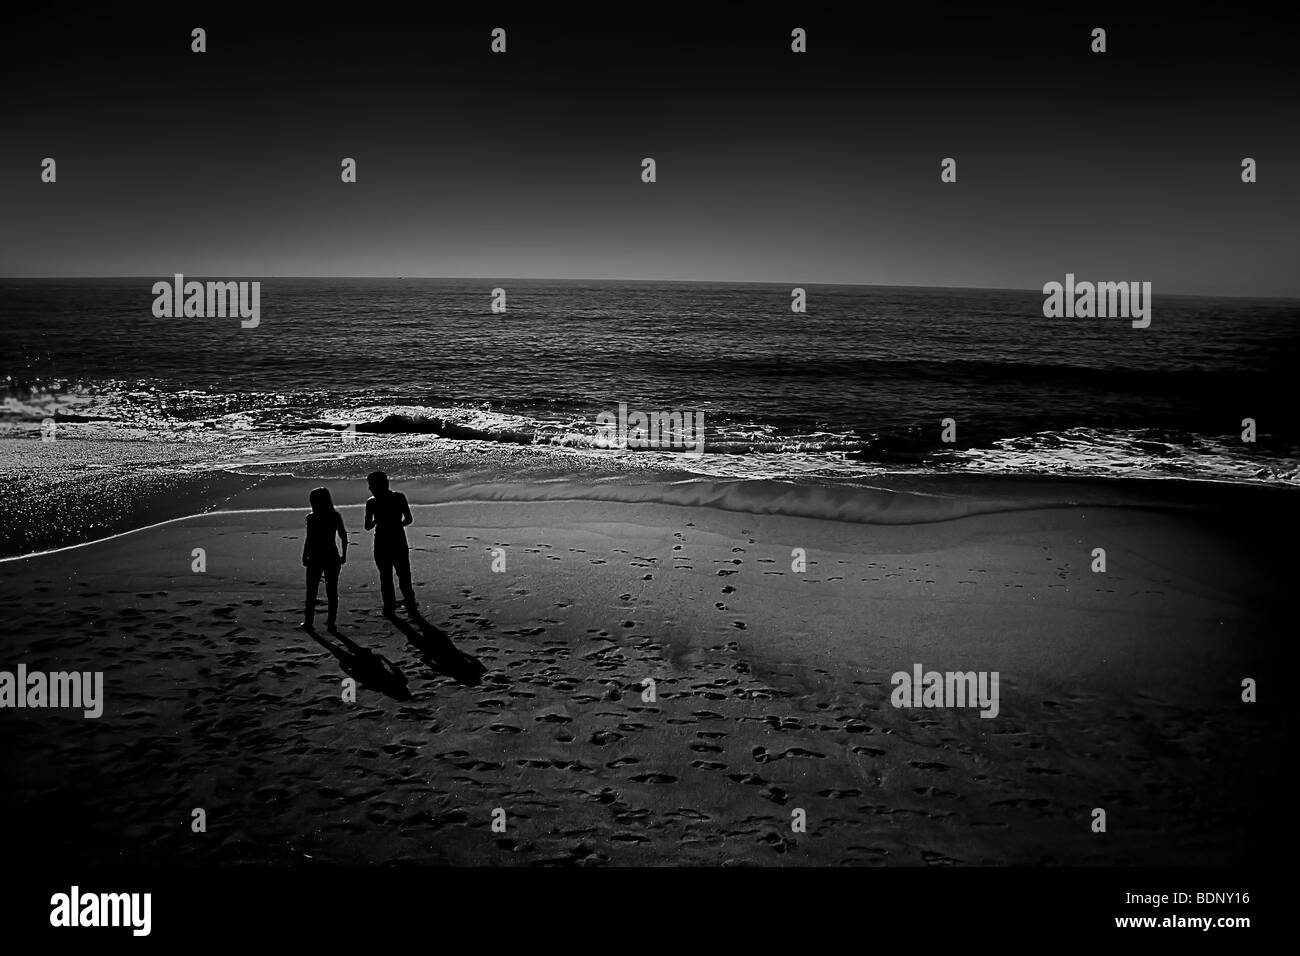 A couple silhouetted on a beach - Stock Image